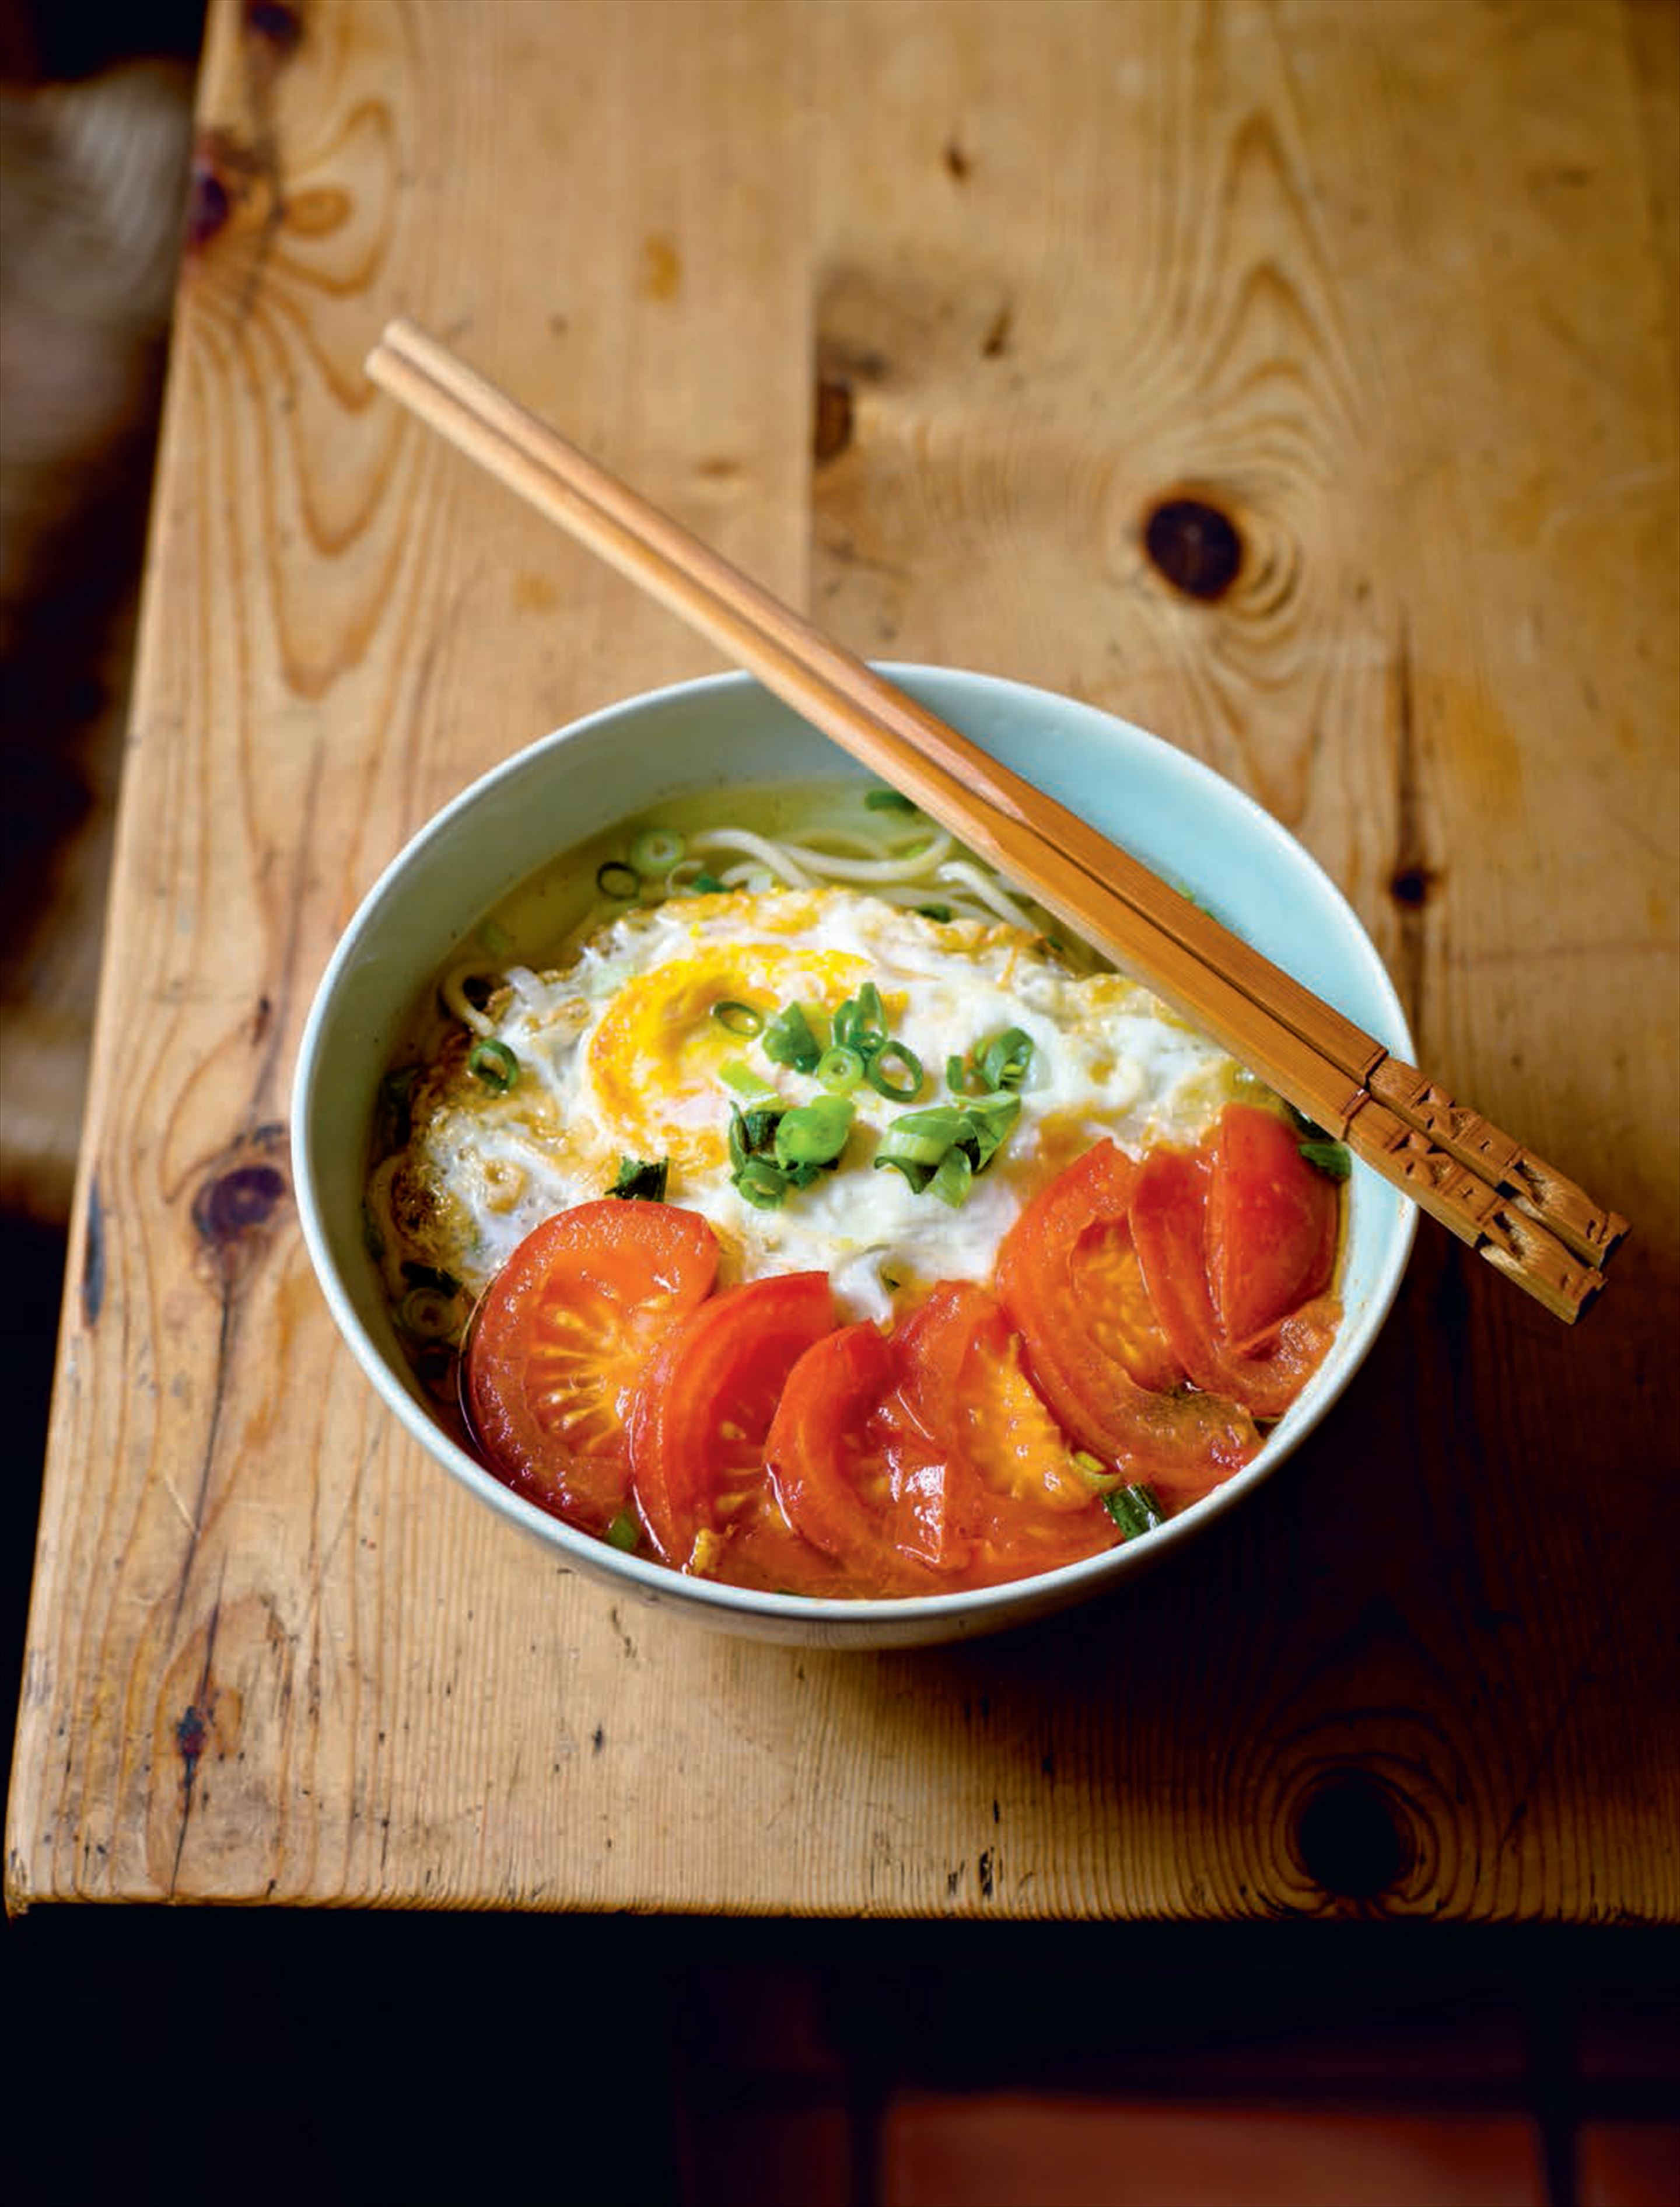 Fried egg and tomato noodles